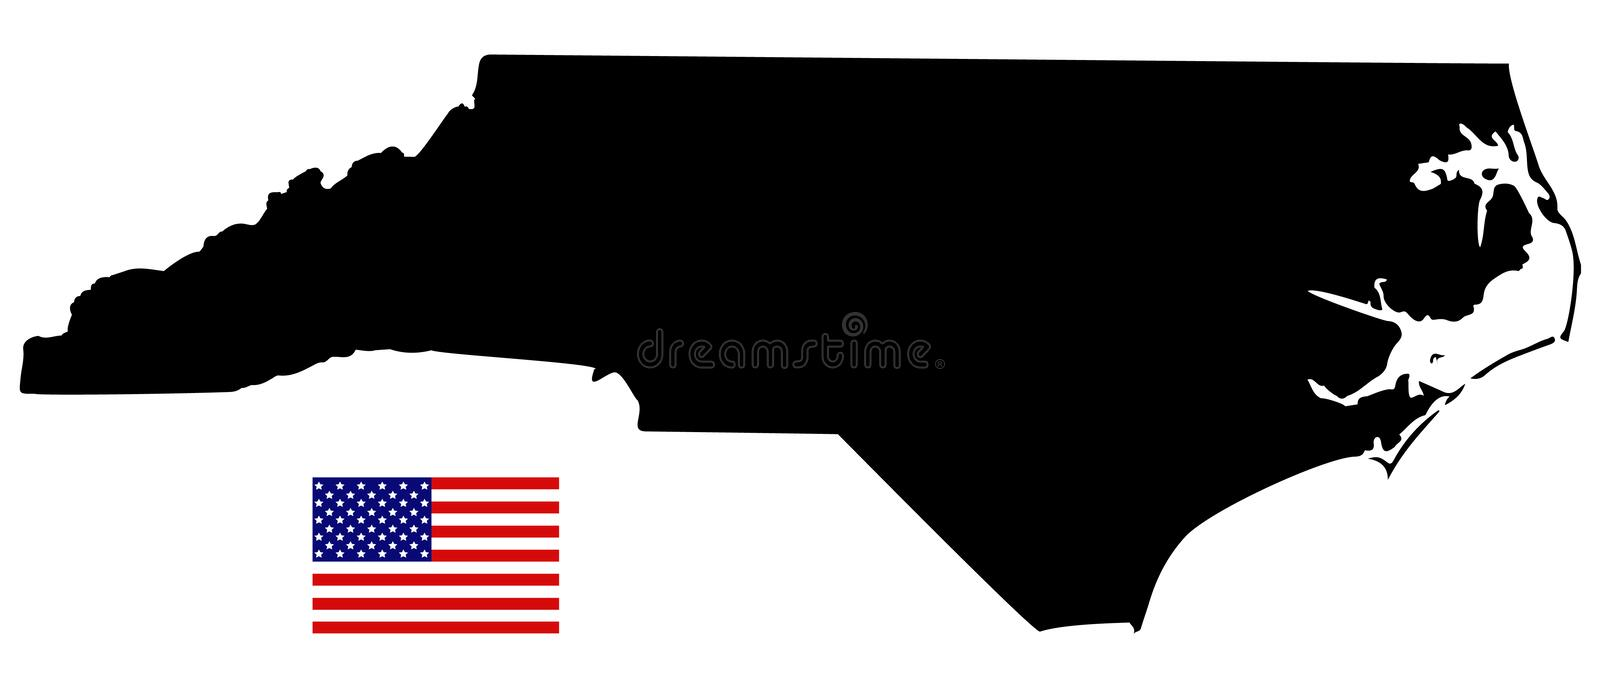 vector file of north carolina map with usa flag state in the southeastern region of the united states